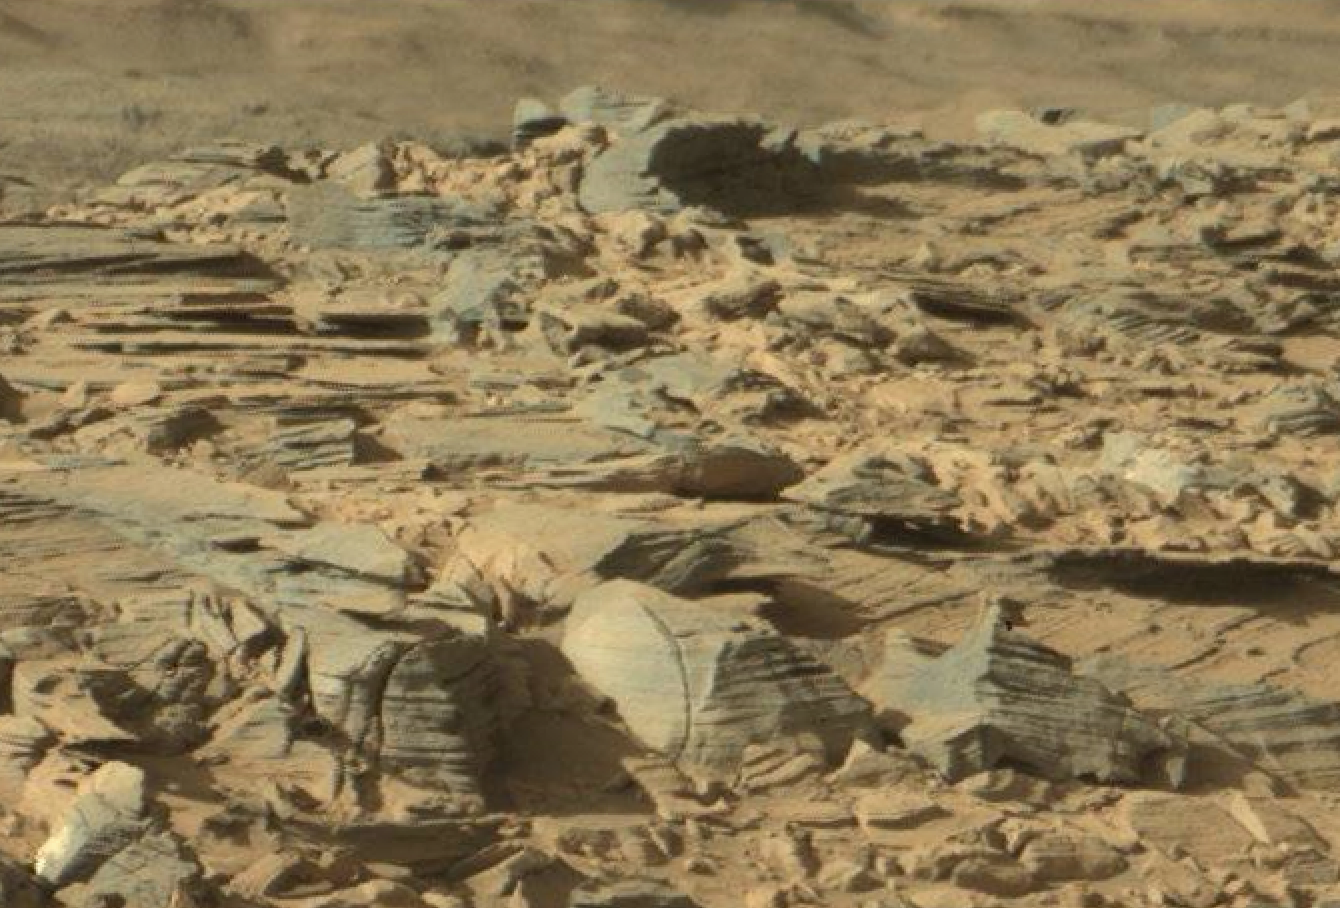 mars sol 1301 anomaly-artifacts 6 was life on mars